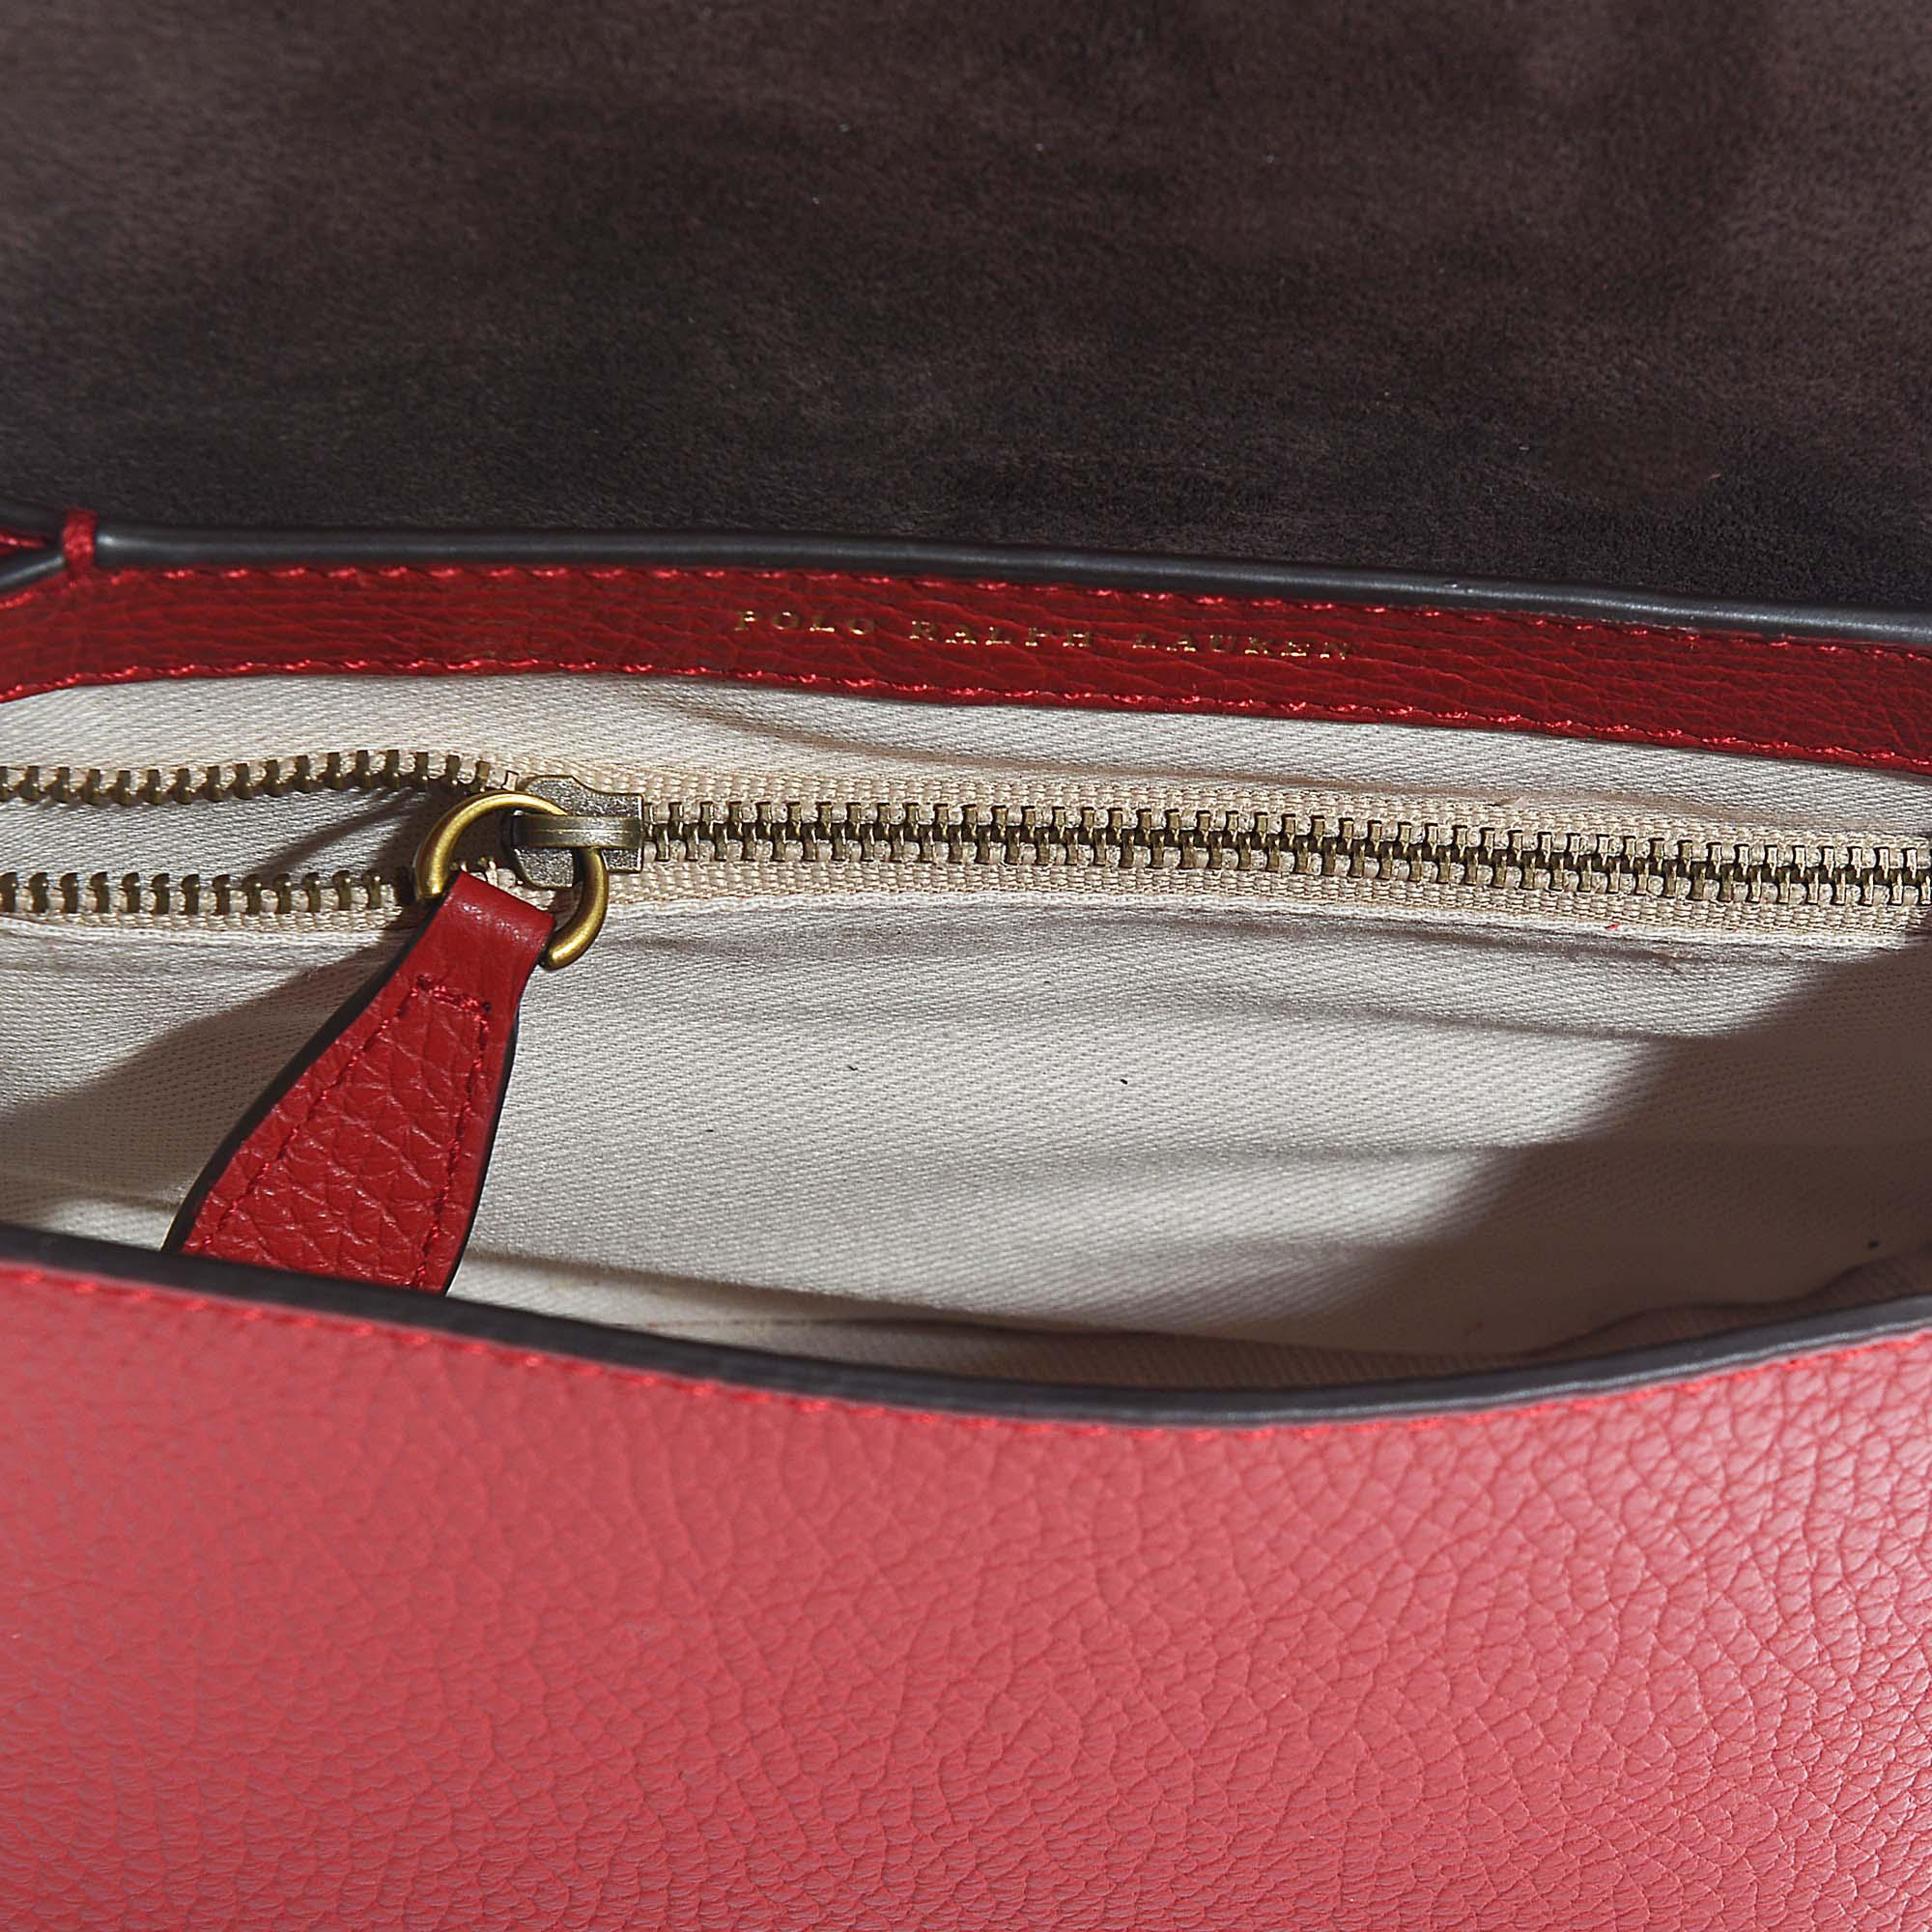 0d43ab9c6a27 Polo Ralph Lauren - Red Lennox Medium Crossbody Bag In Scarlet Pebble  Leather - Lyst. View fullscreen